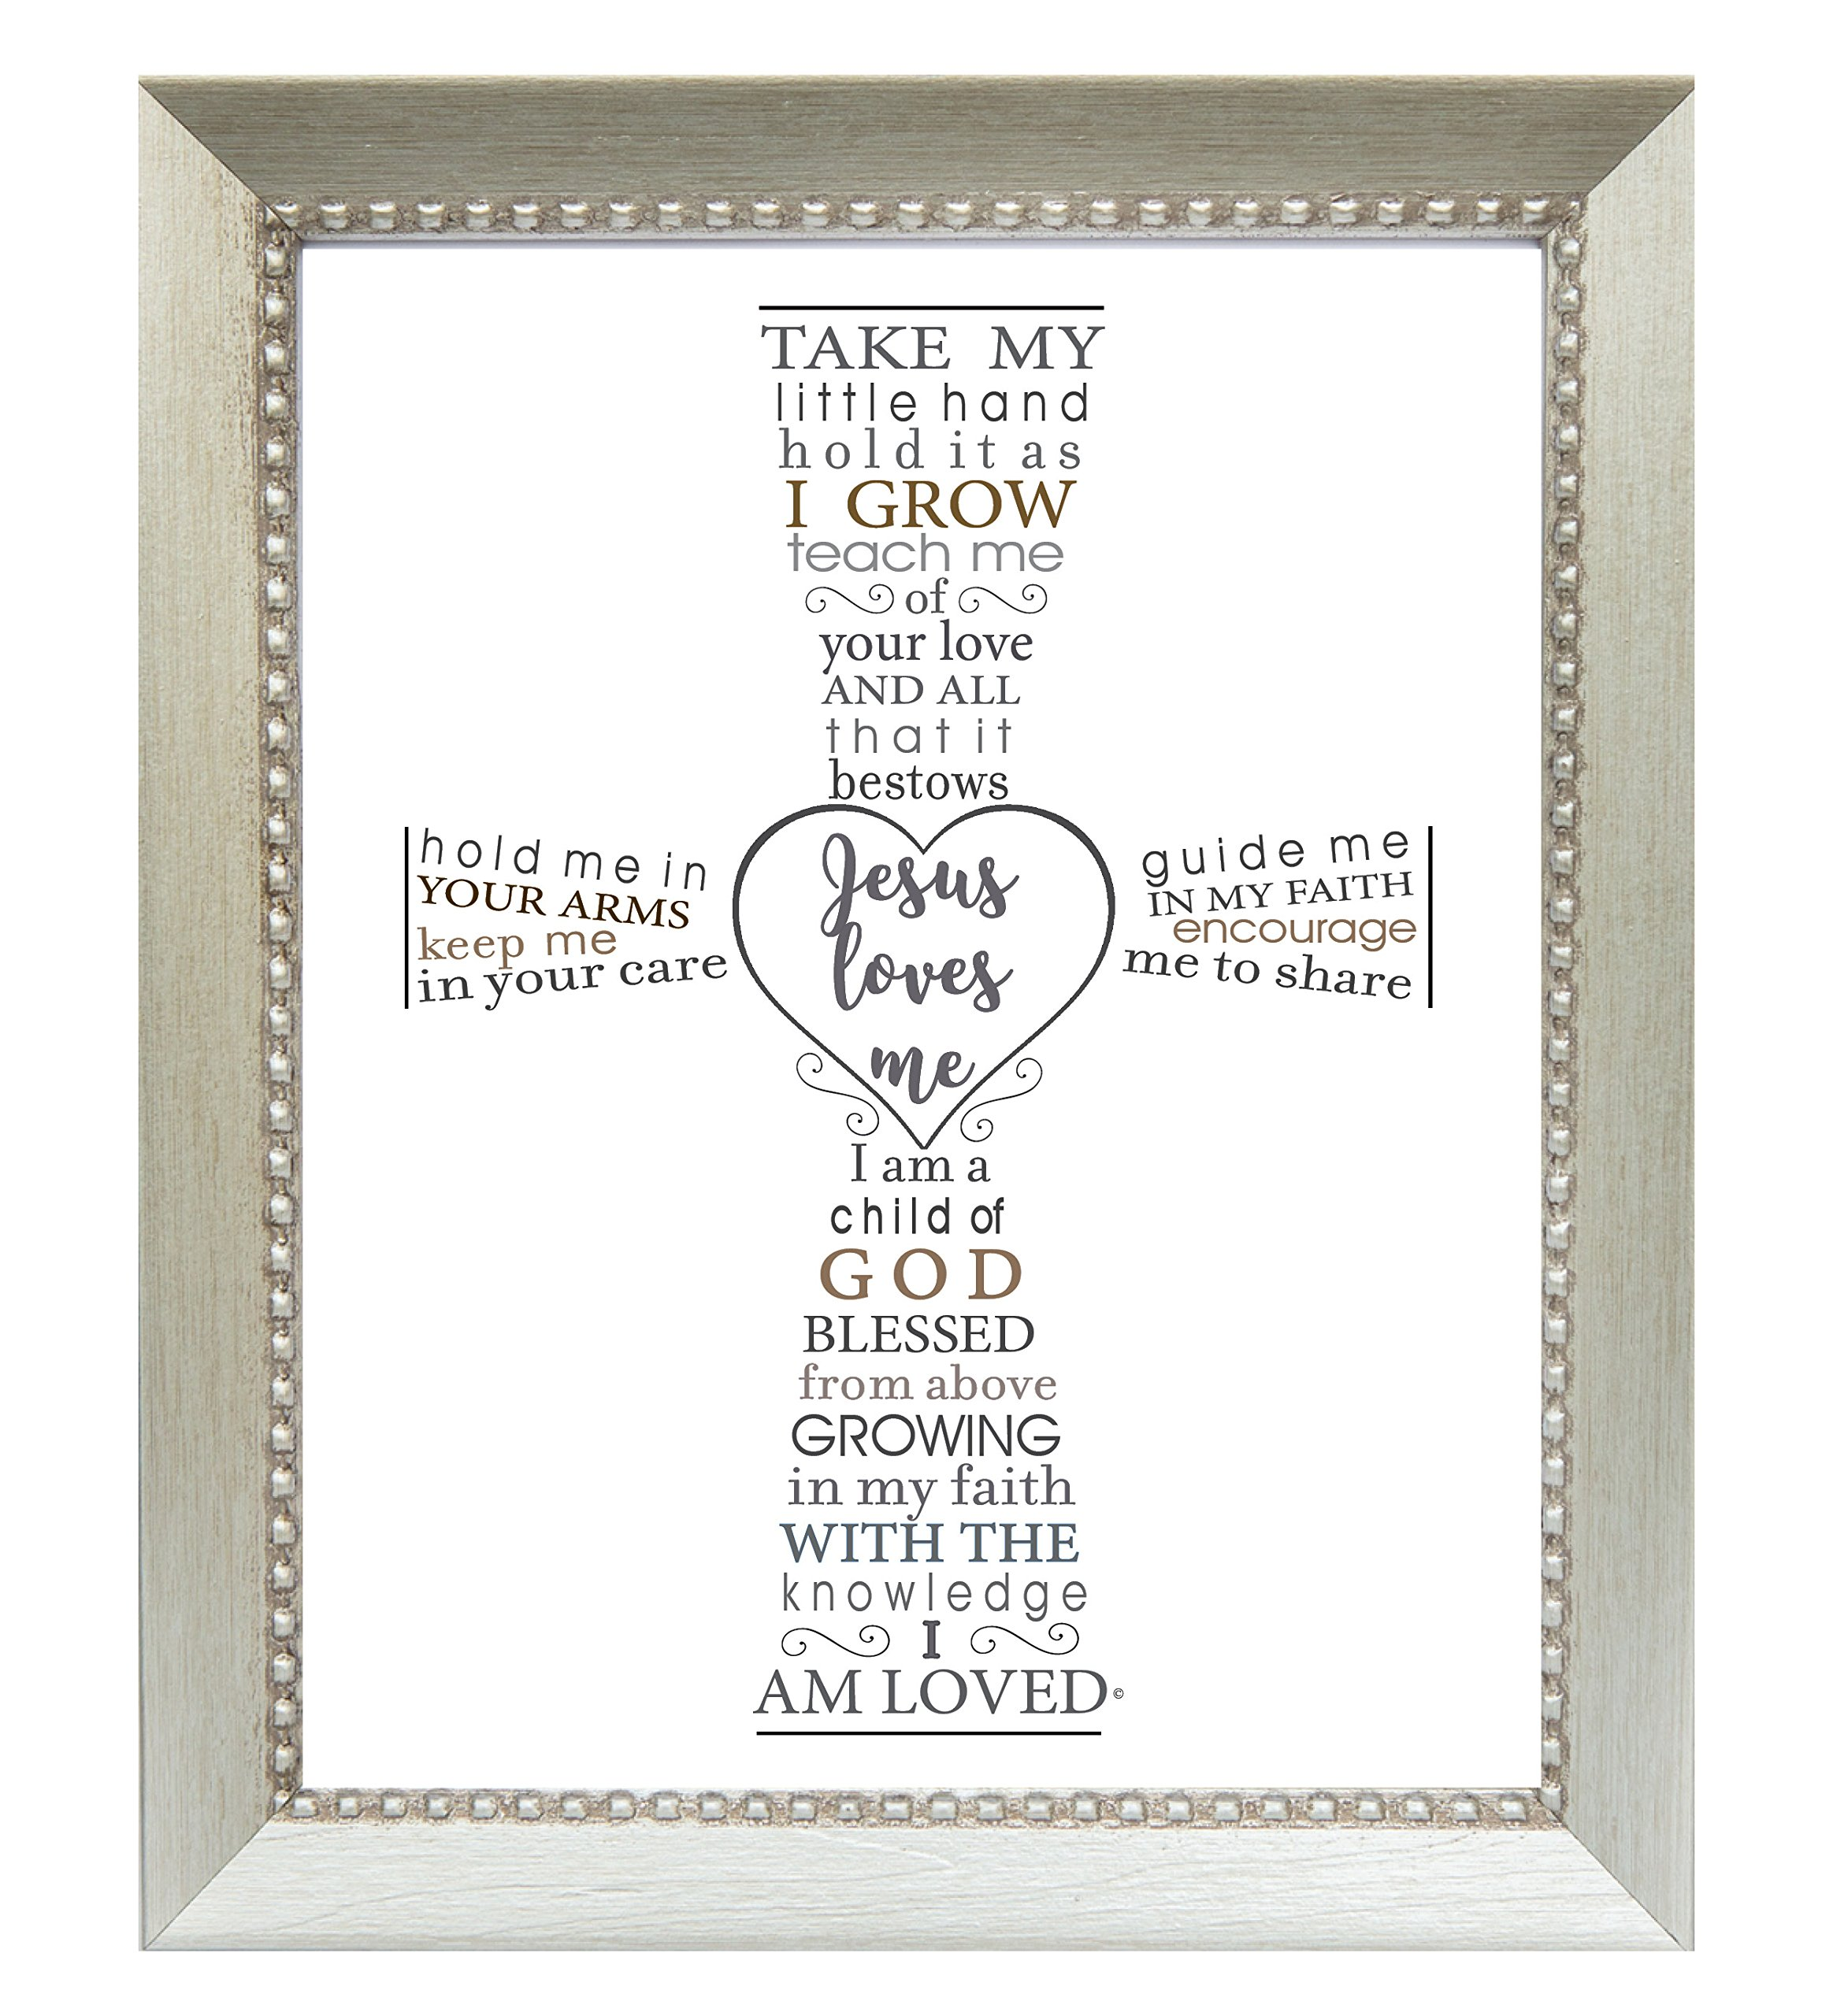 The Grandparent Gift Jesus Loves Me Frame for Baby's Baptism or Christening, silver frame